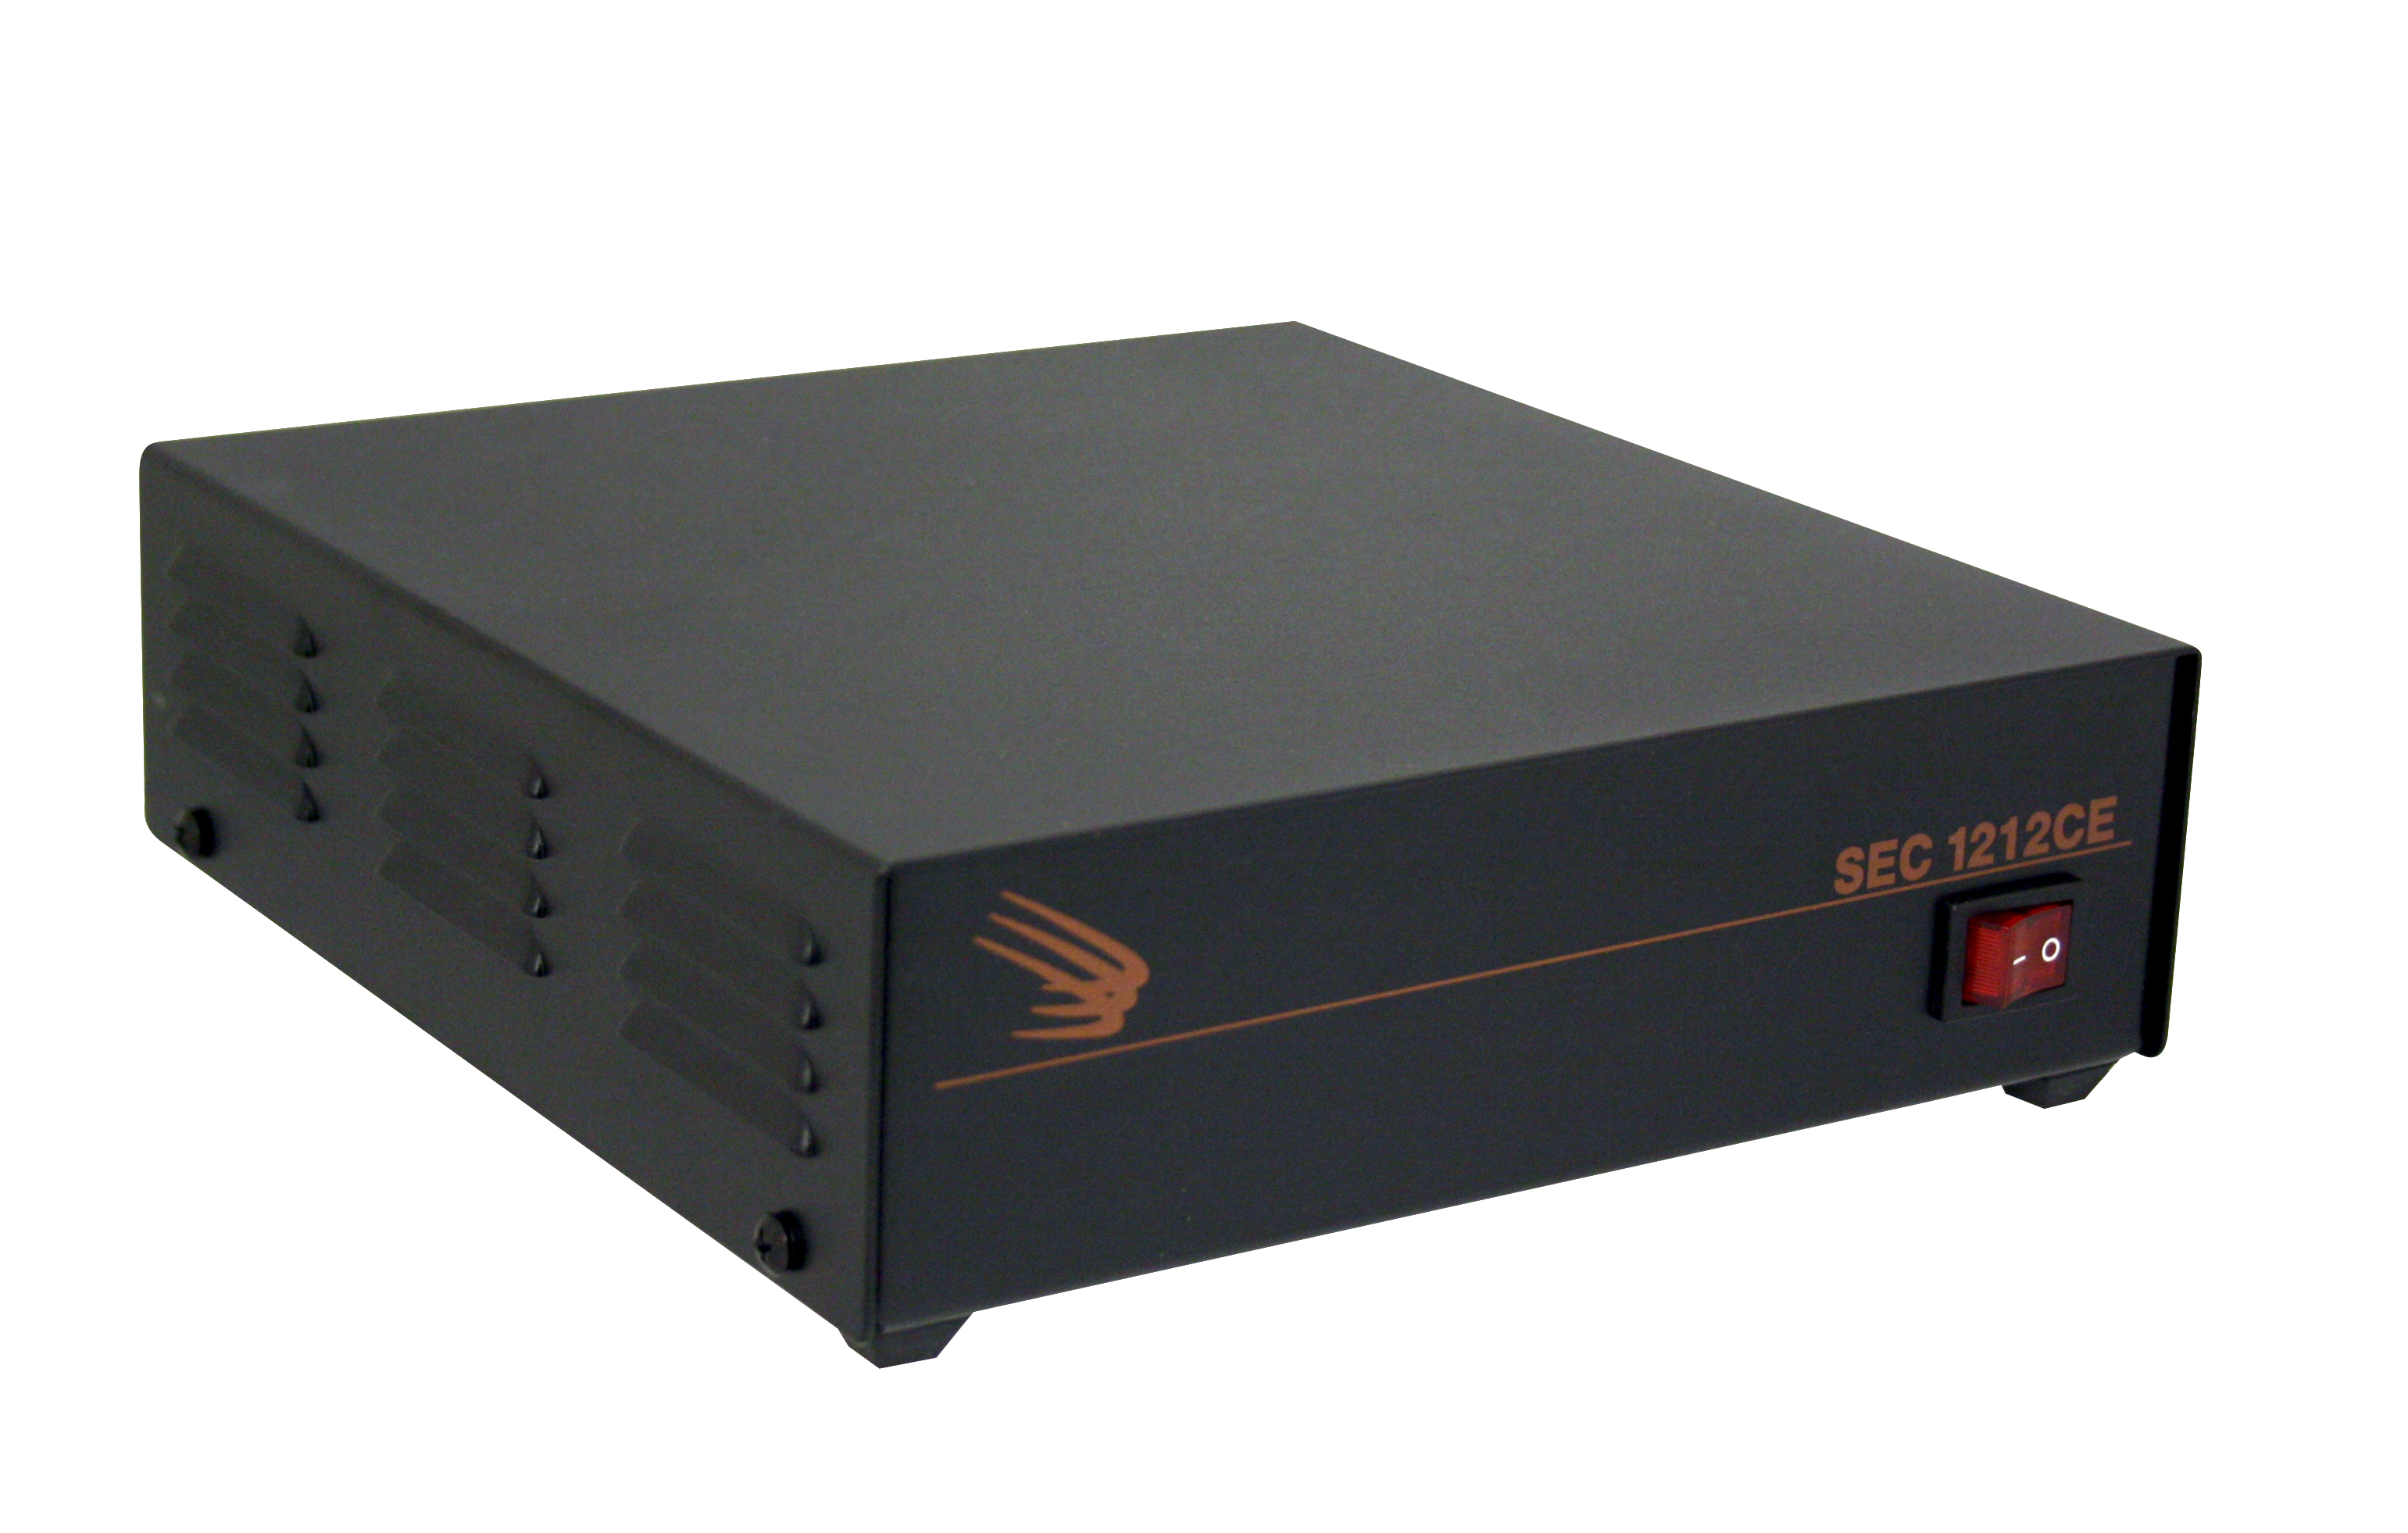 Desktop Switching Power Supply.Input: 230 VAC, Output: 13.8 VDC, 10 Amps.RoHS Compliant